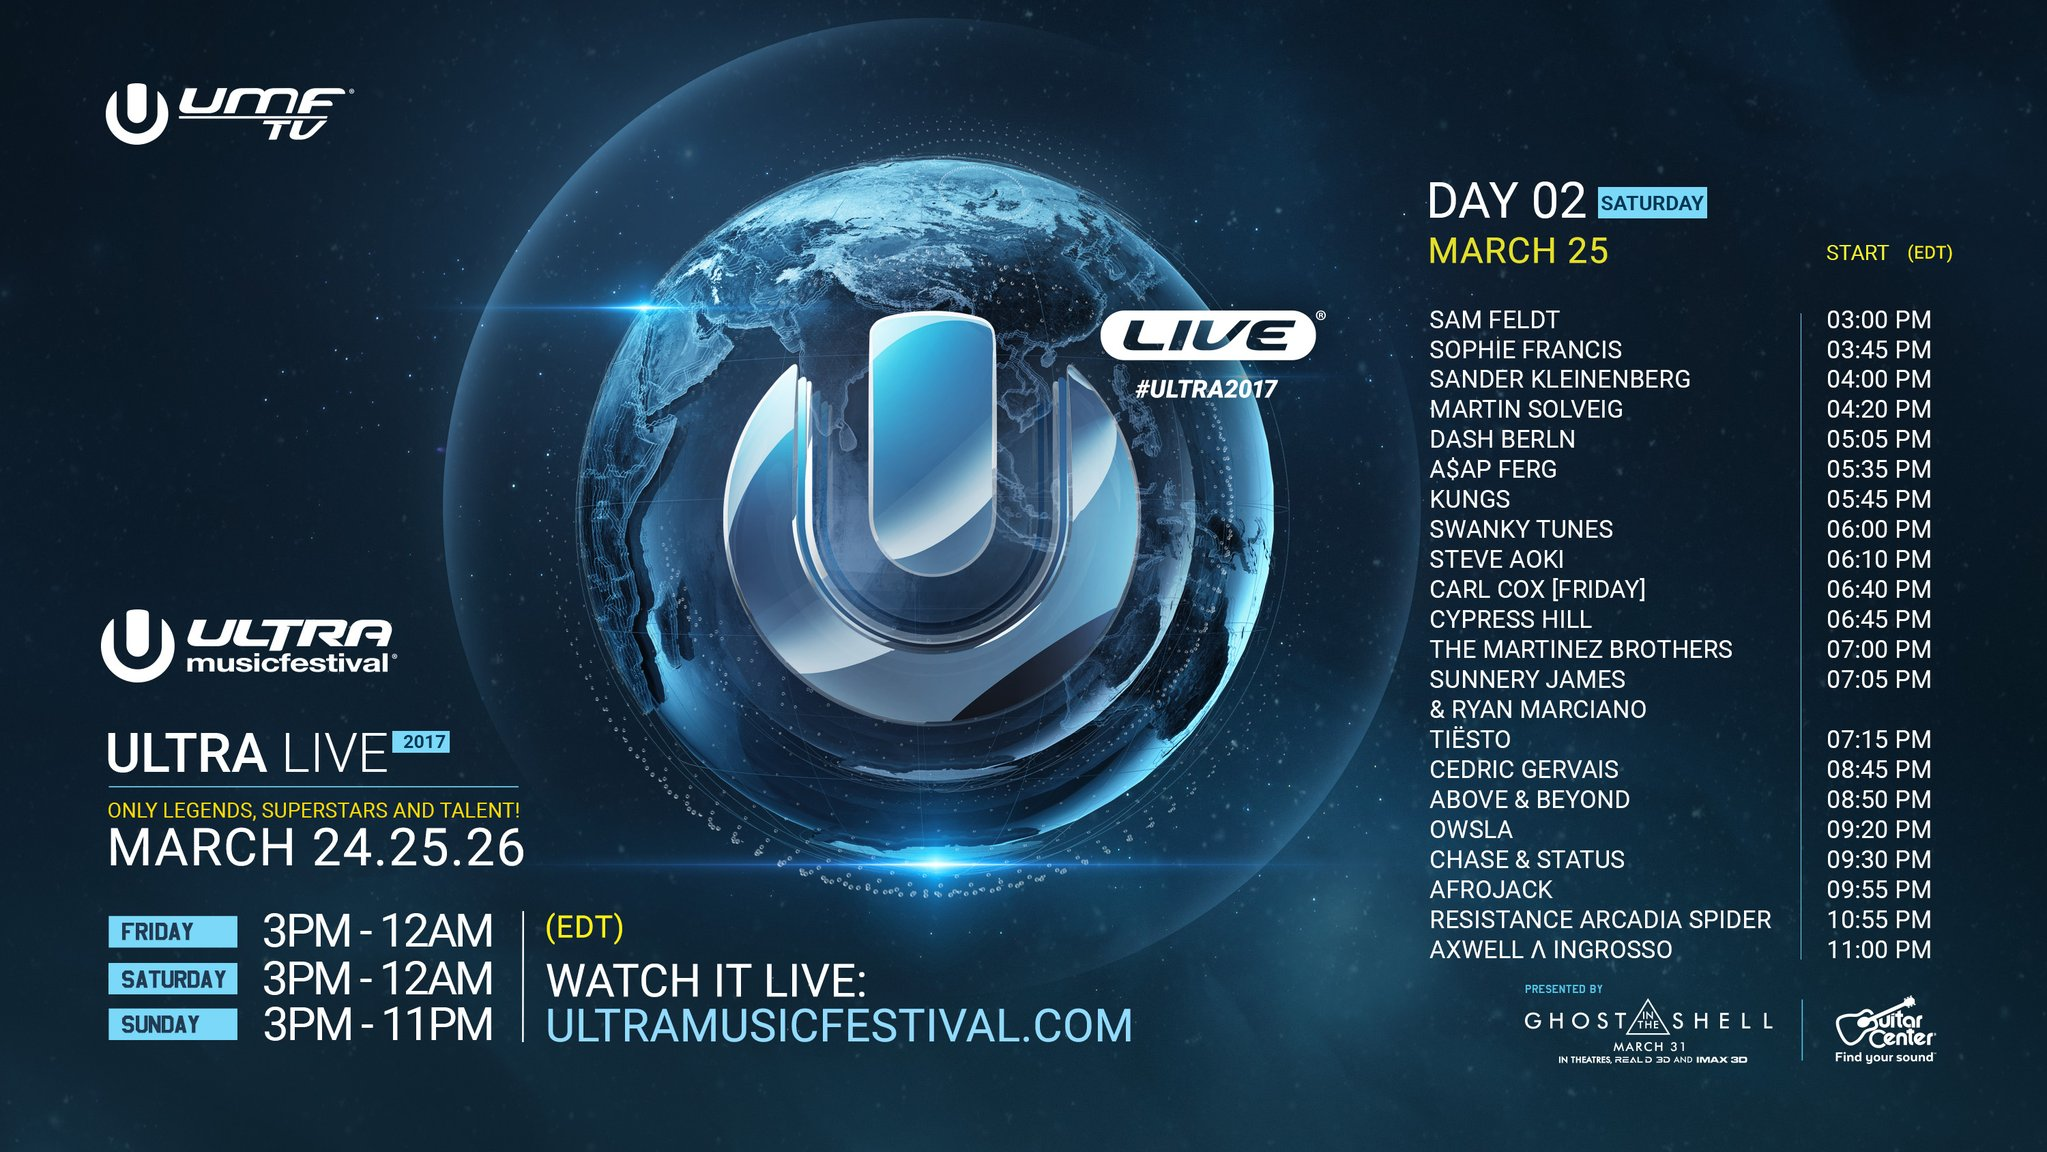 Axwell & Ingrosso, Afrojack, Tiesto, Dash Berlin etc - Live at Ultra Music Festival Miami Day2, 1080p Stream - 25-Mar-2017